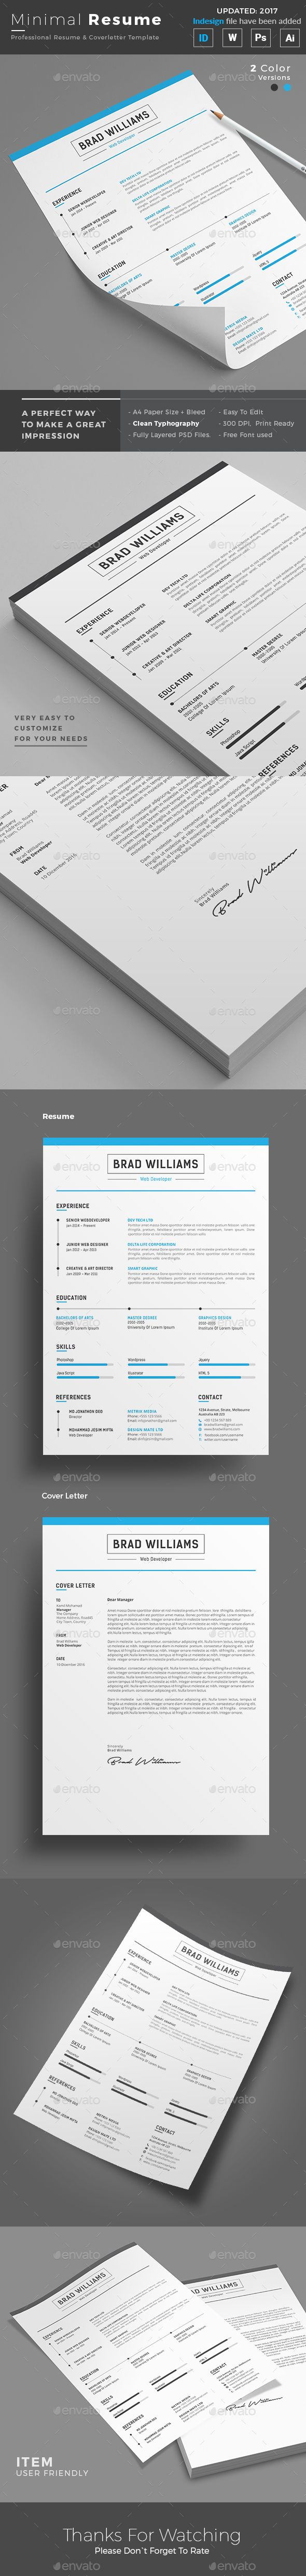 Resume 53 best CV images on Pinterest